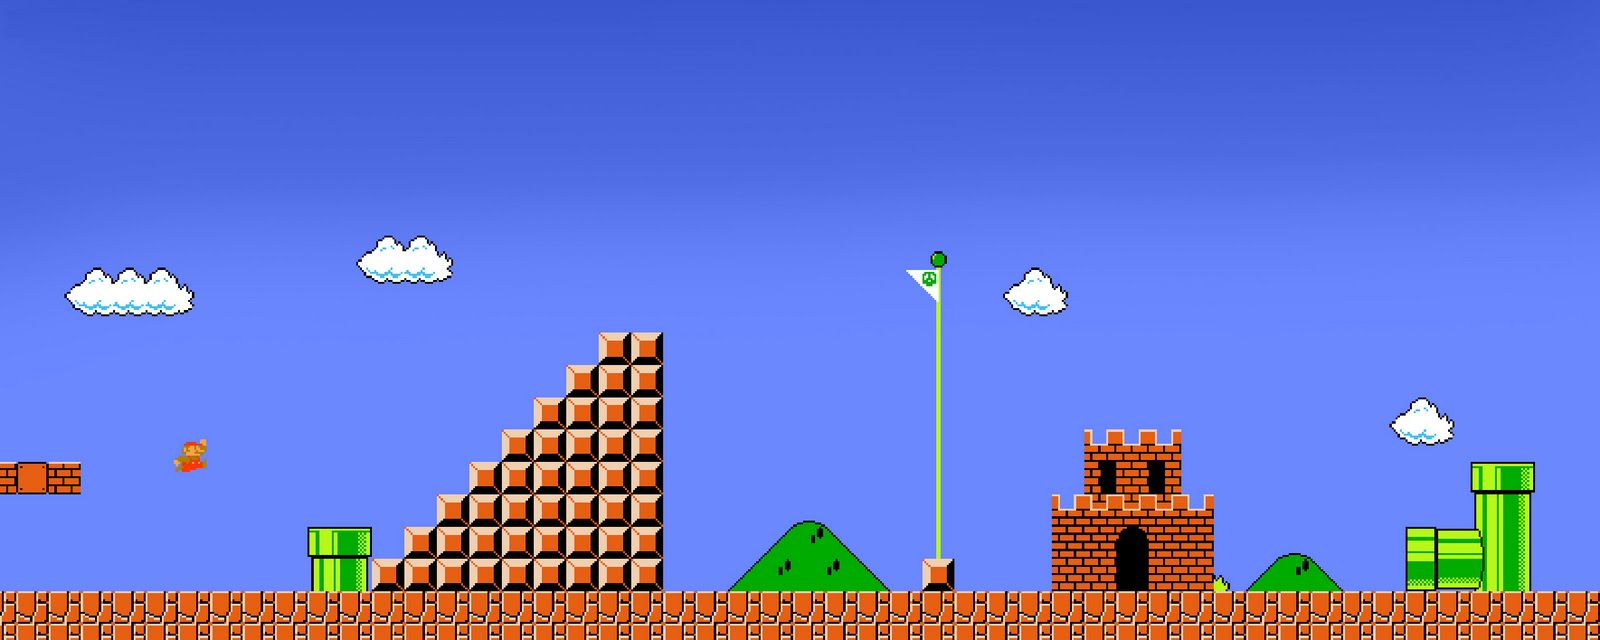 Wallpapers Retro Video Game Post 1600x640